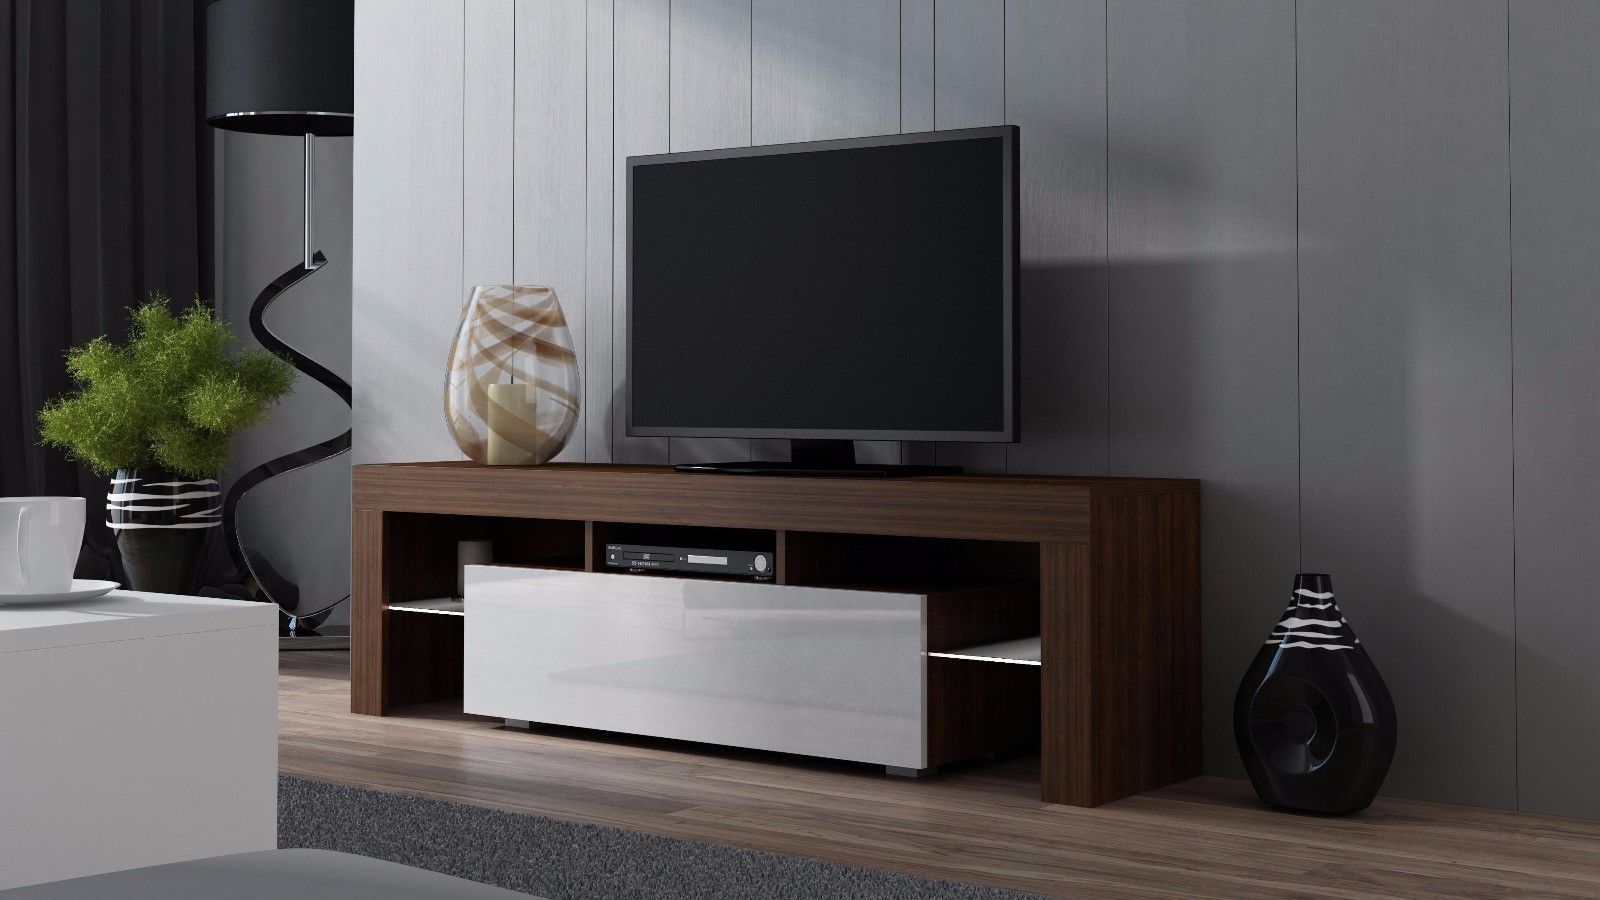 """Current Milano 160 Walnut Modern Tv Cabinets For Up To 70""""screens Within Milano 200 Wall Mounted Floating Led 79"""" Tv Stands (View 7 of 10)"""